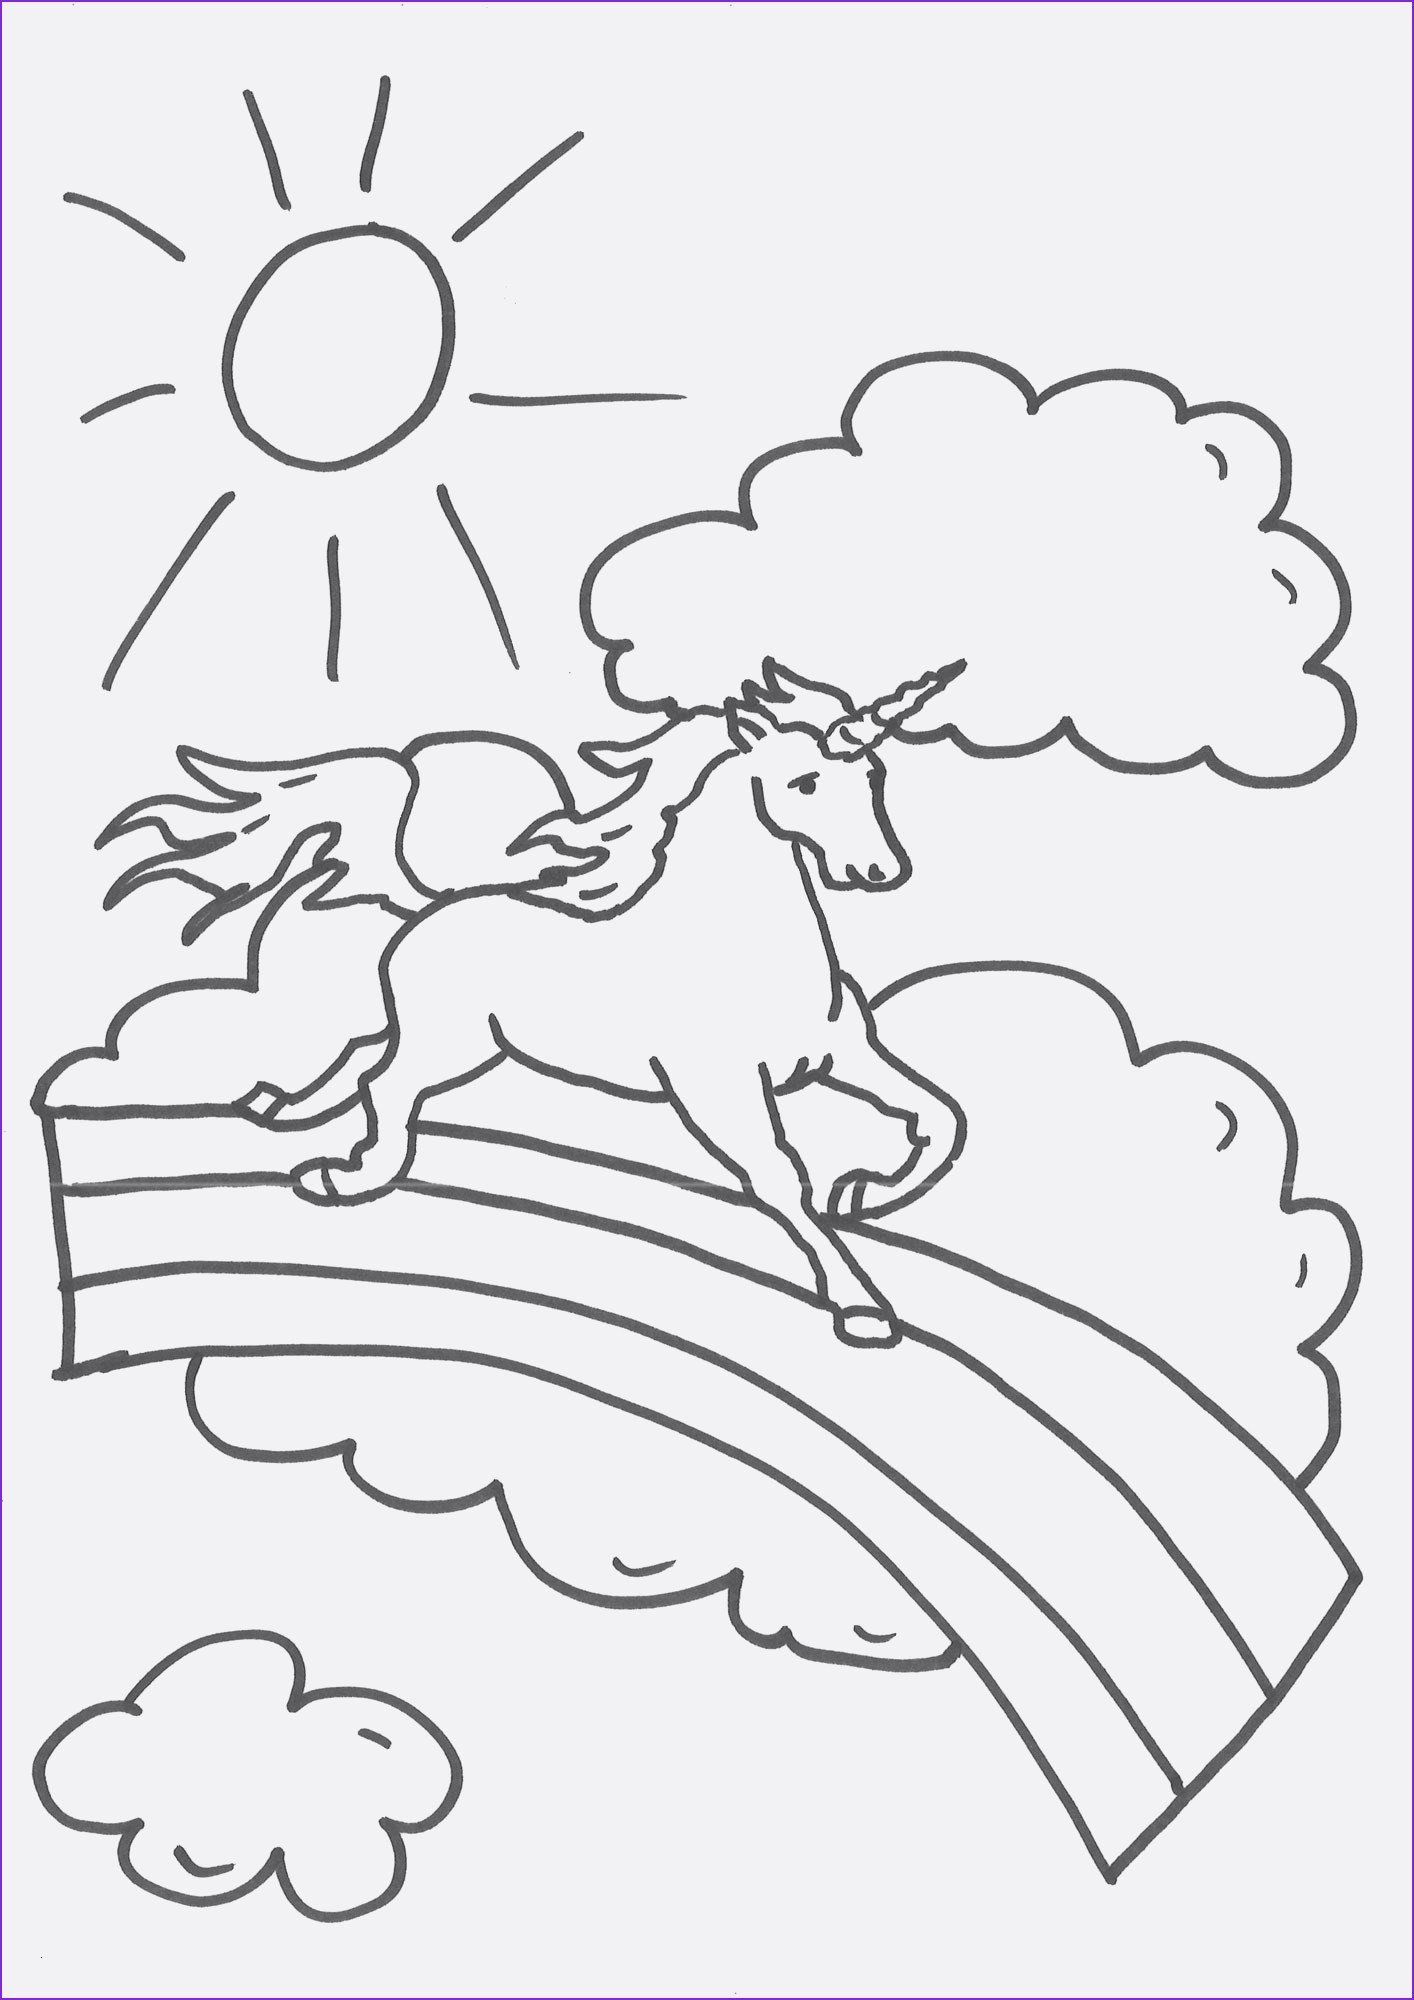 Coloring Pages Of Food New Ausmalbilder Kawaii Food Foto Ausmalbilder Kostenlos Animal Coloring Pages Creation Coloring Pages Horse Coloring Pages